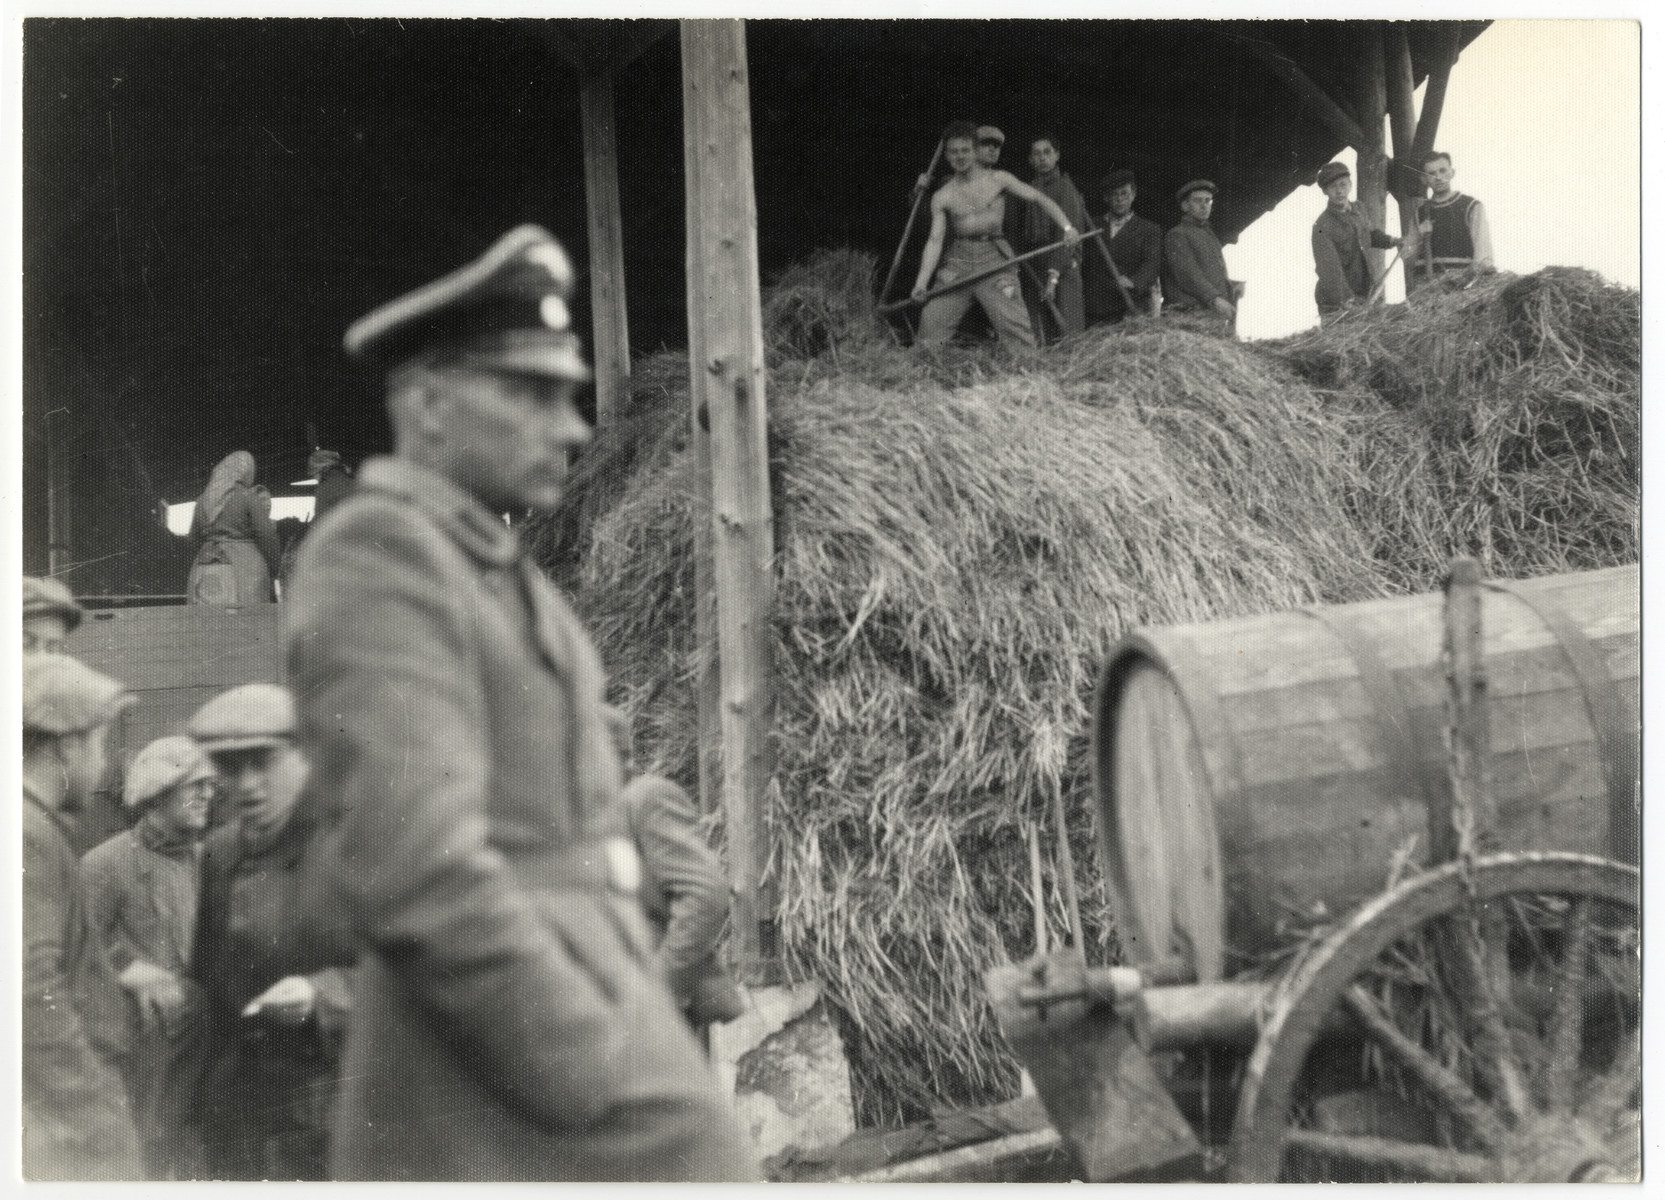 SS guard Schmiller walks past the barn of the Lipa farm labor camp where Jewish workers are pitching hay.